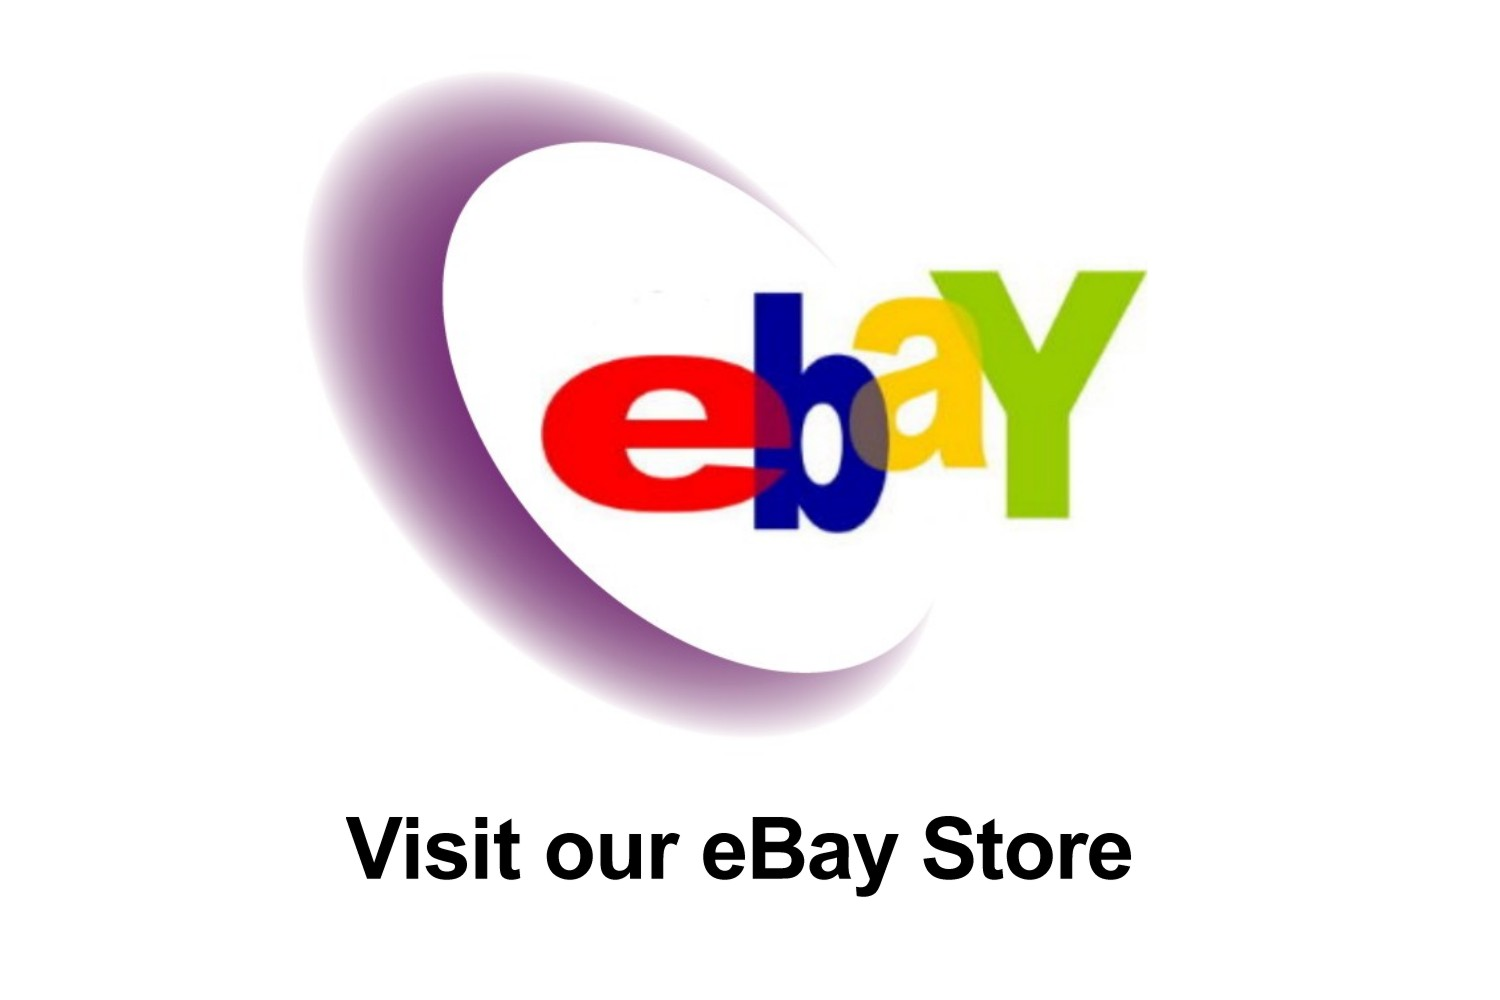 legend-of-time-ebay-store.jpg